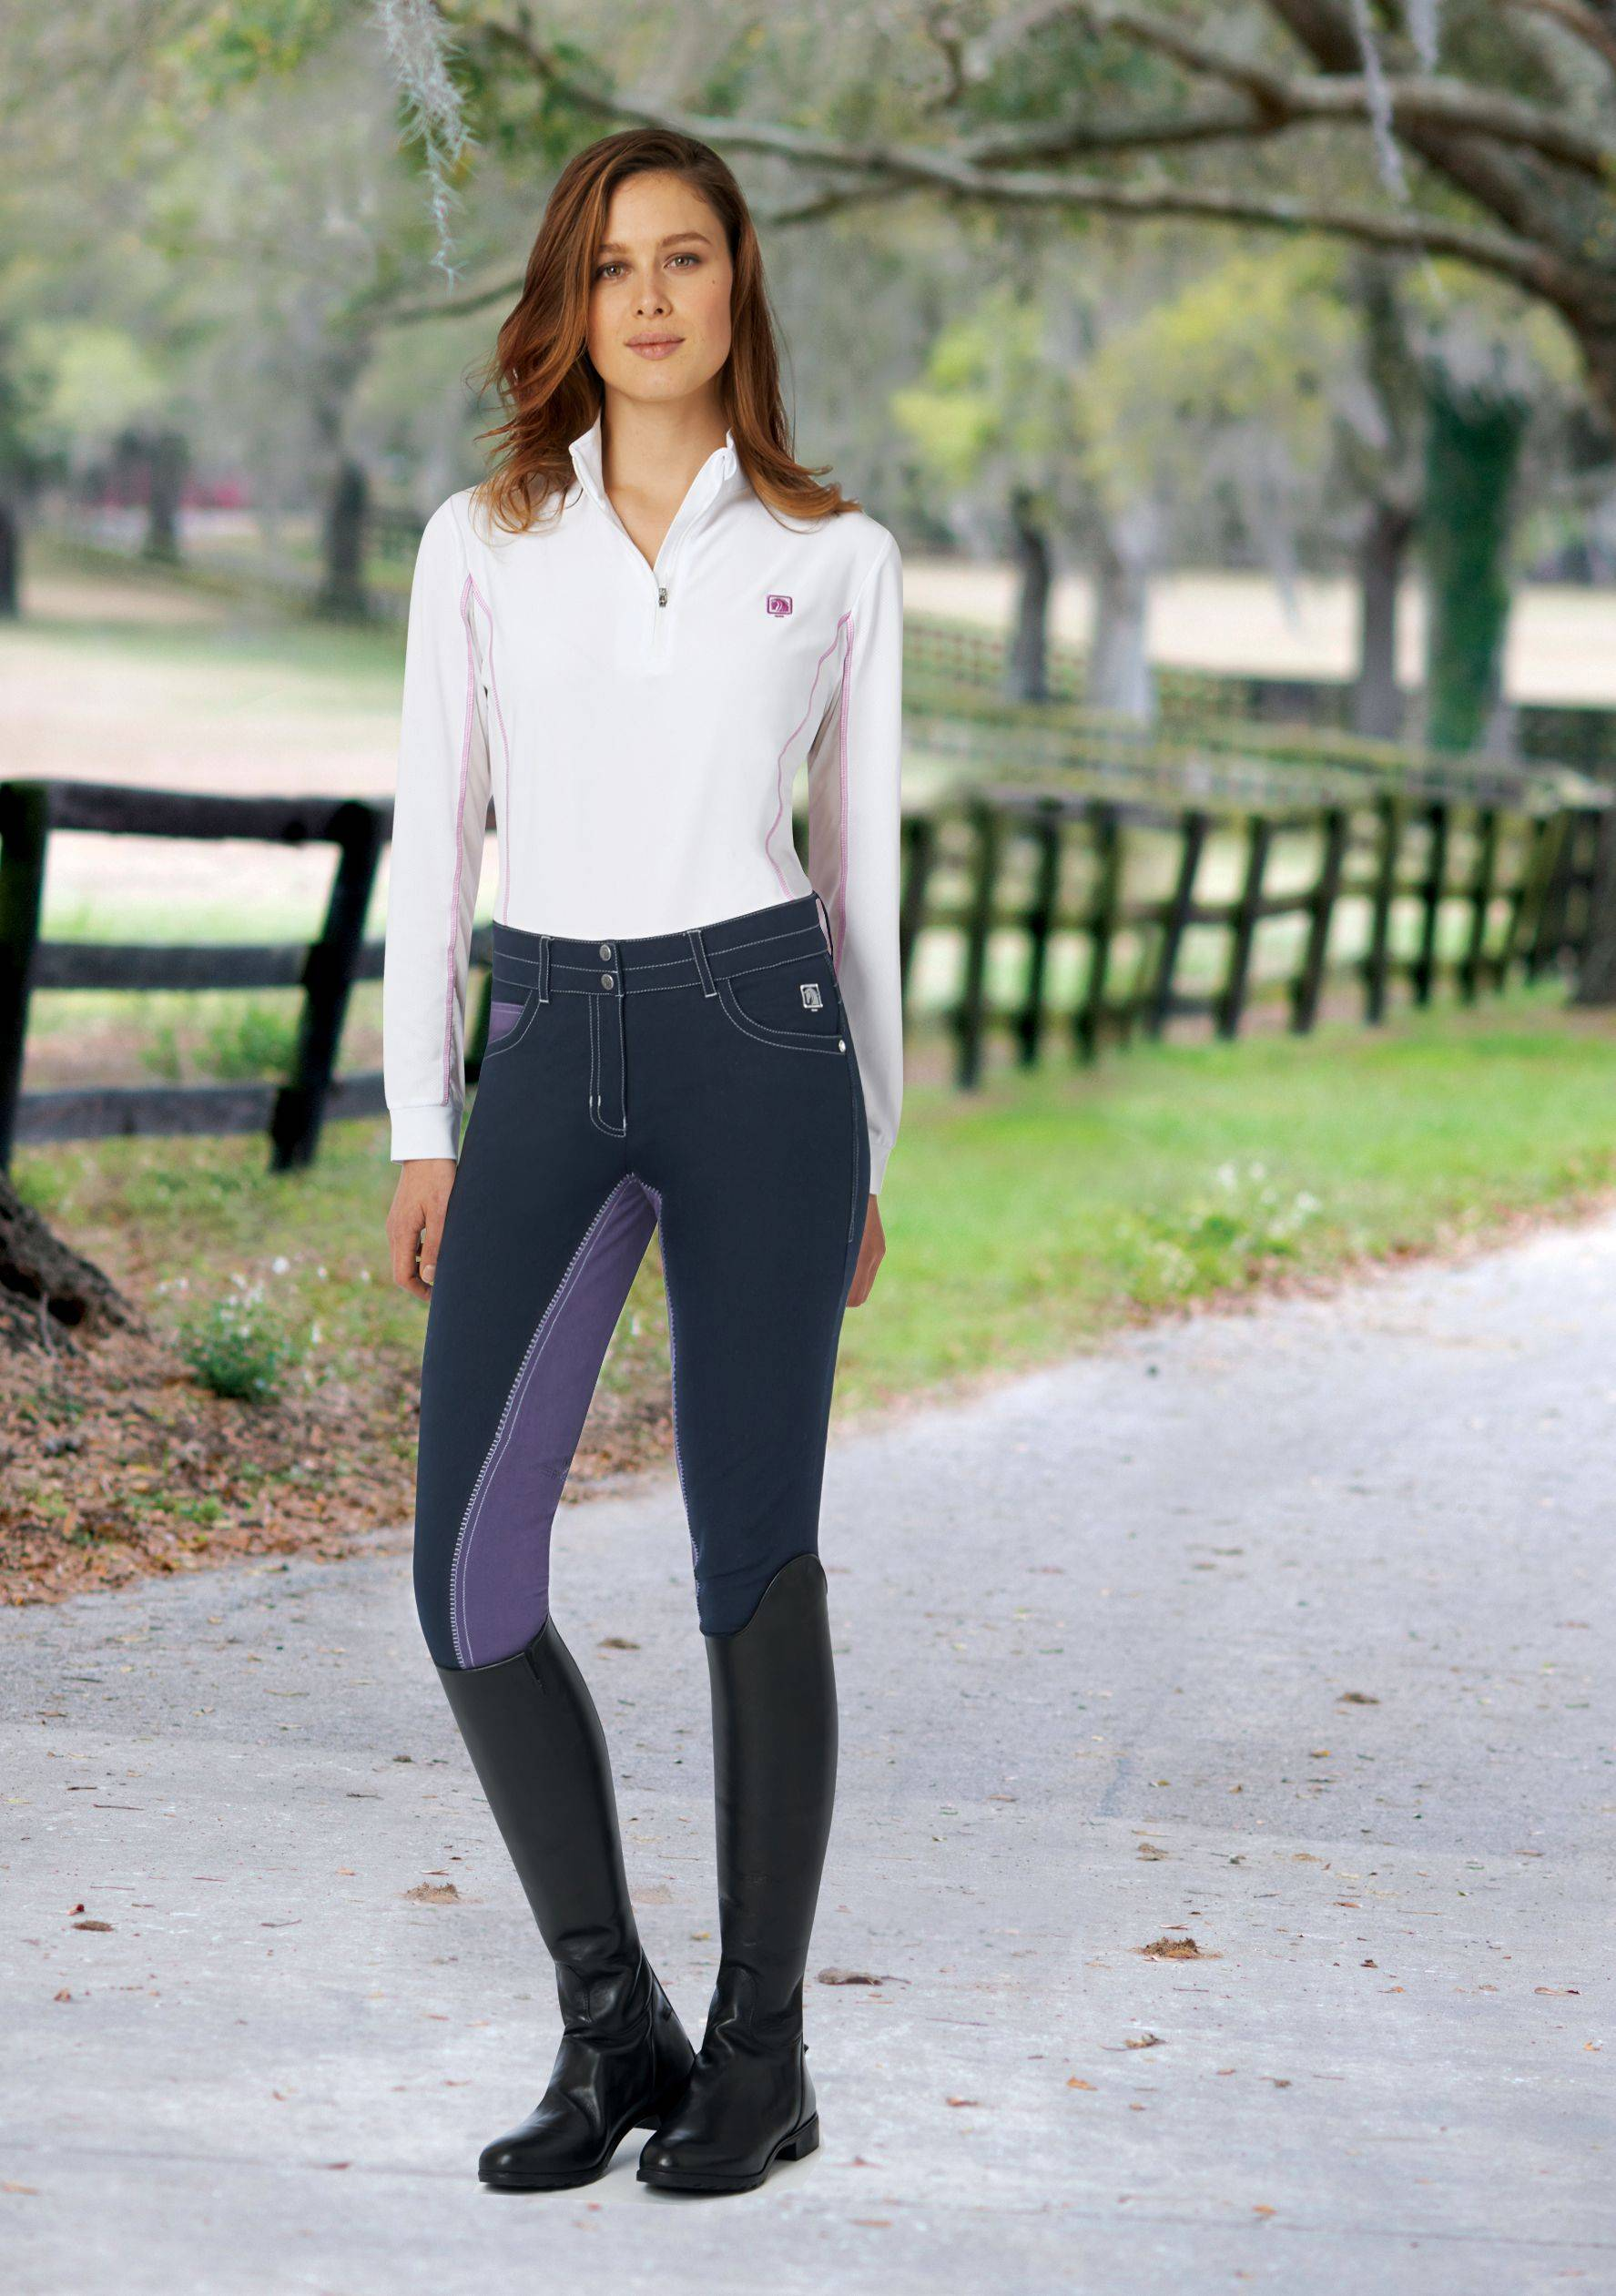 Romfh St Tropez Breech - Ladies, Full Seat